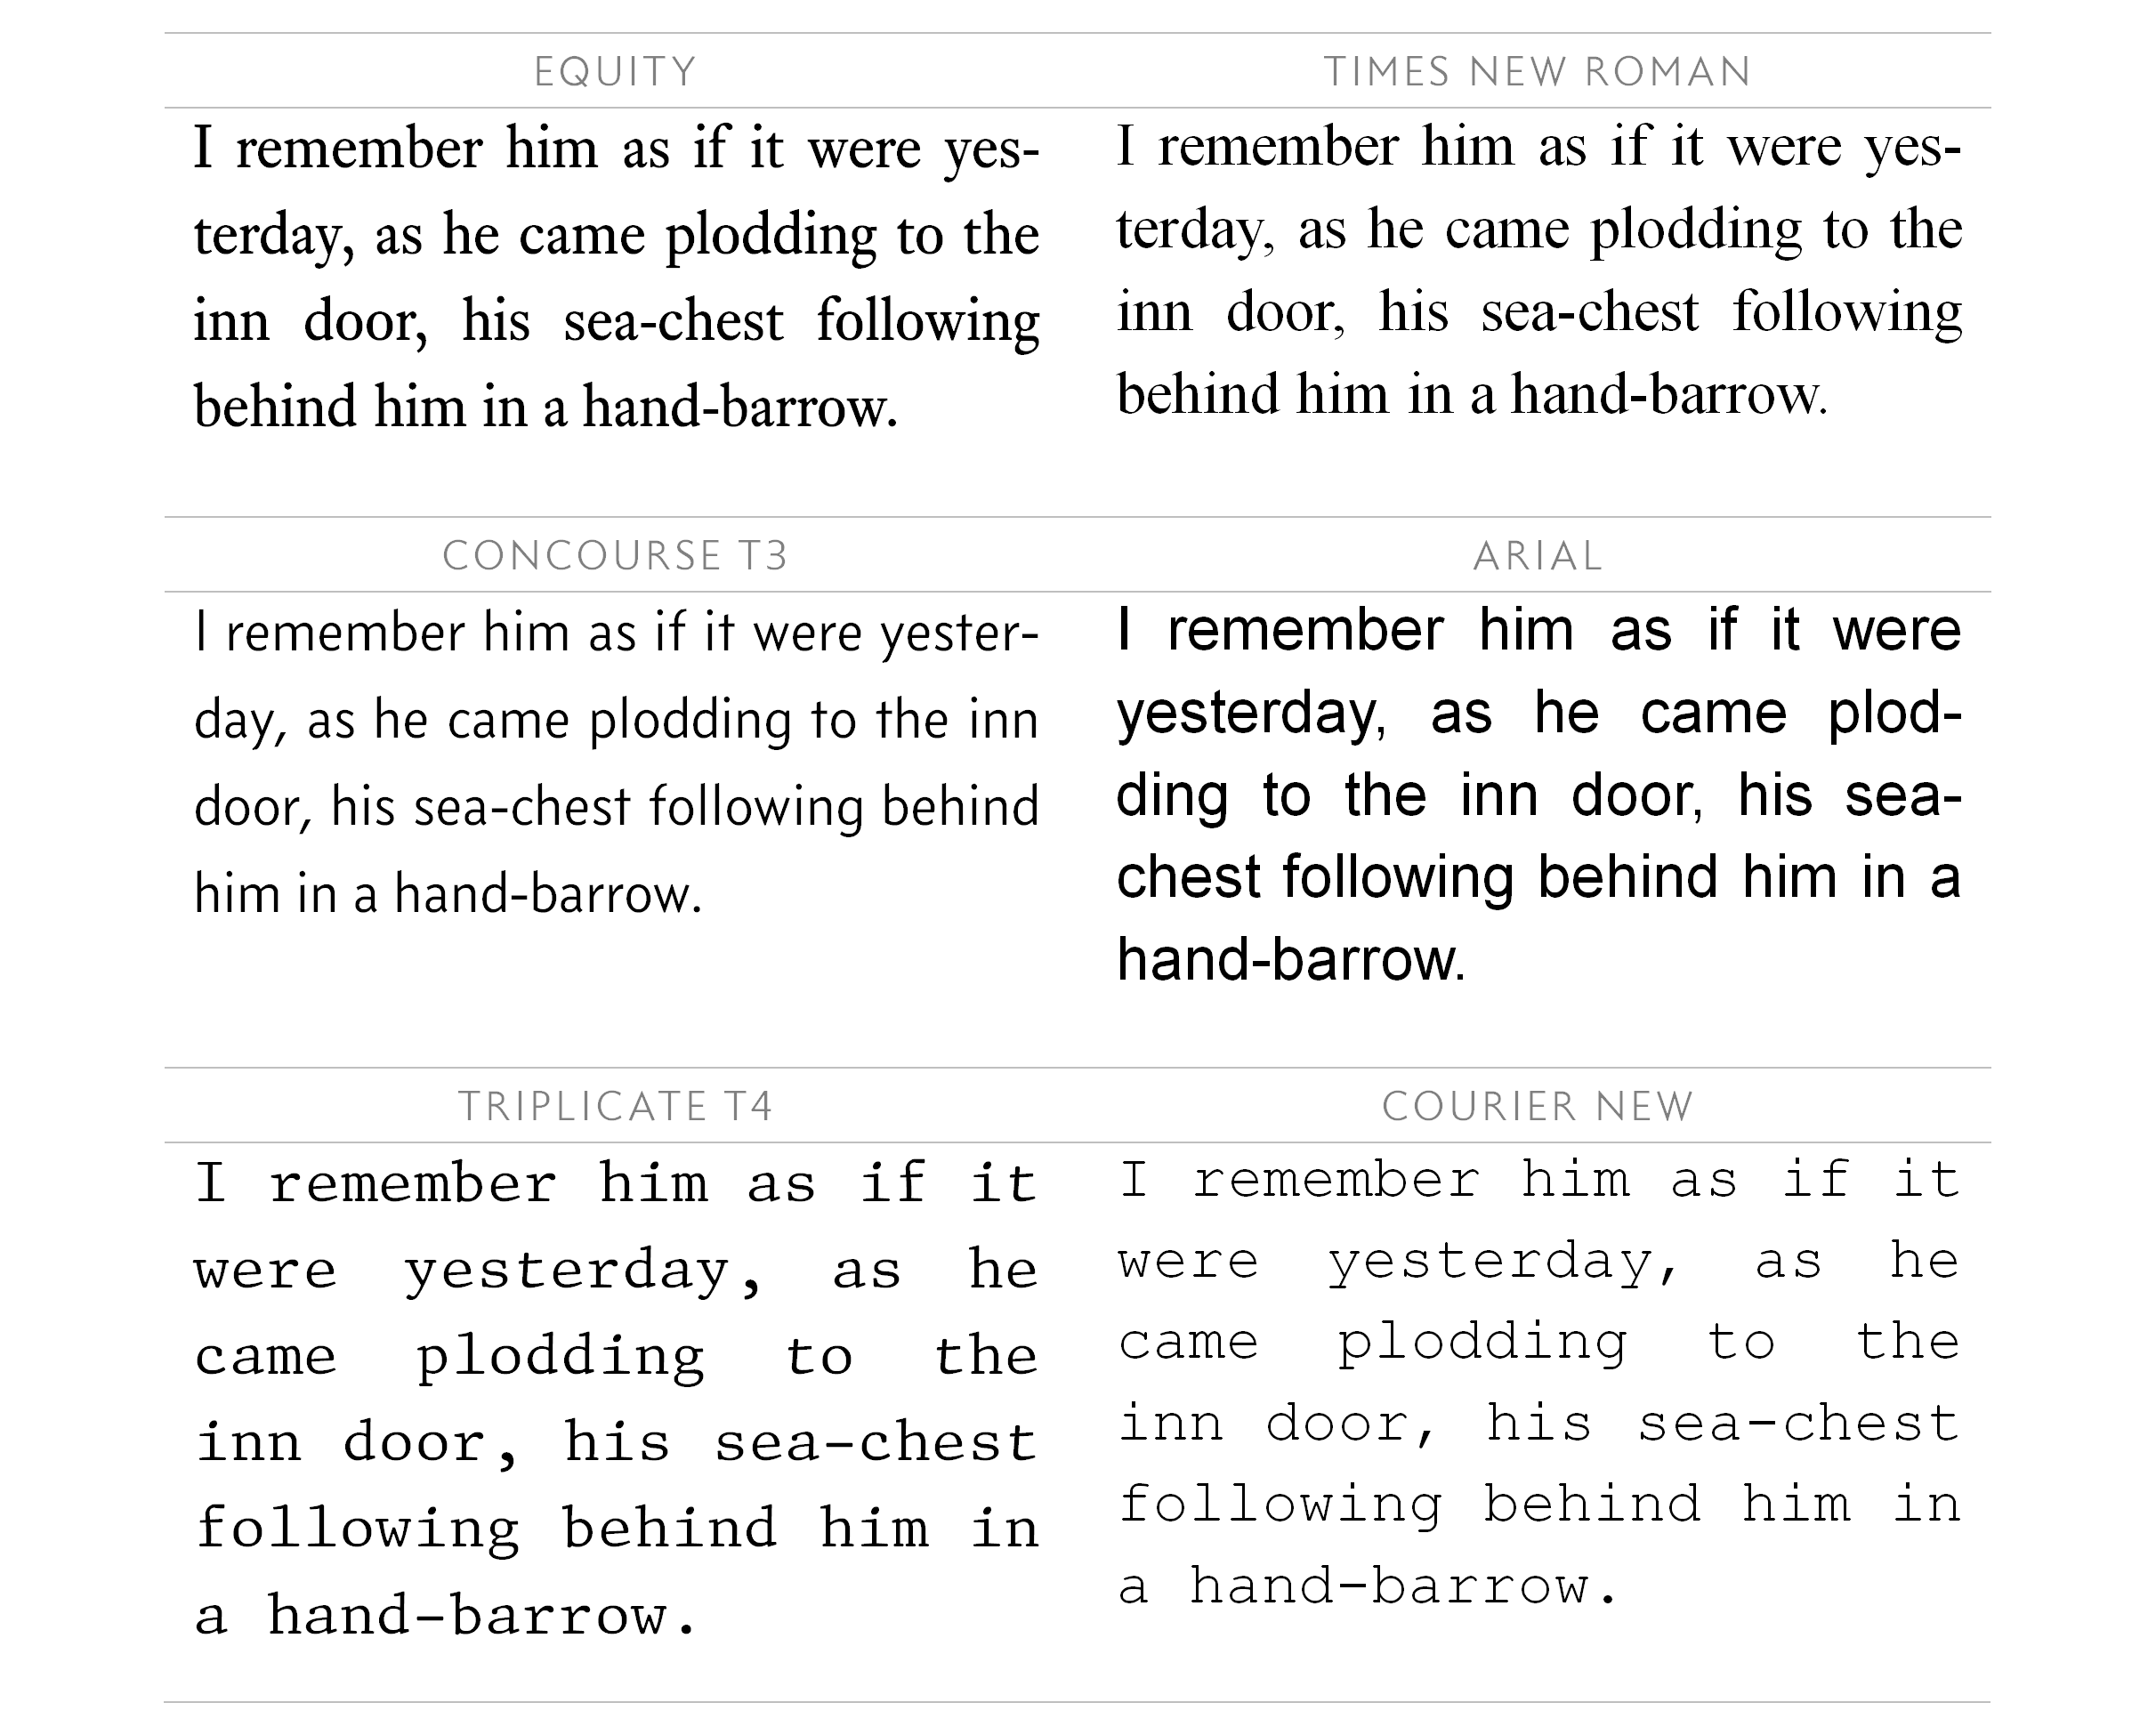 Table 3.1 - A comparison of the Equity fonts